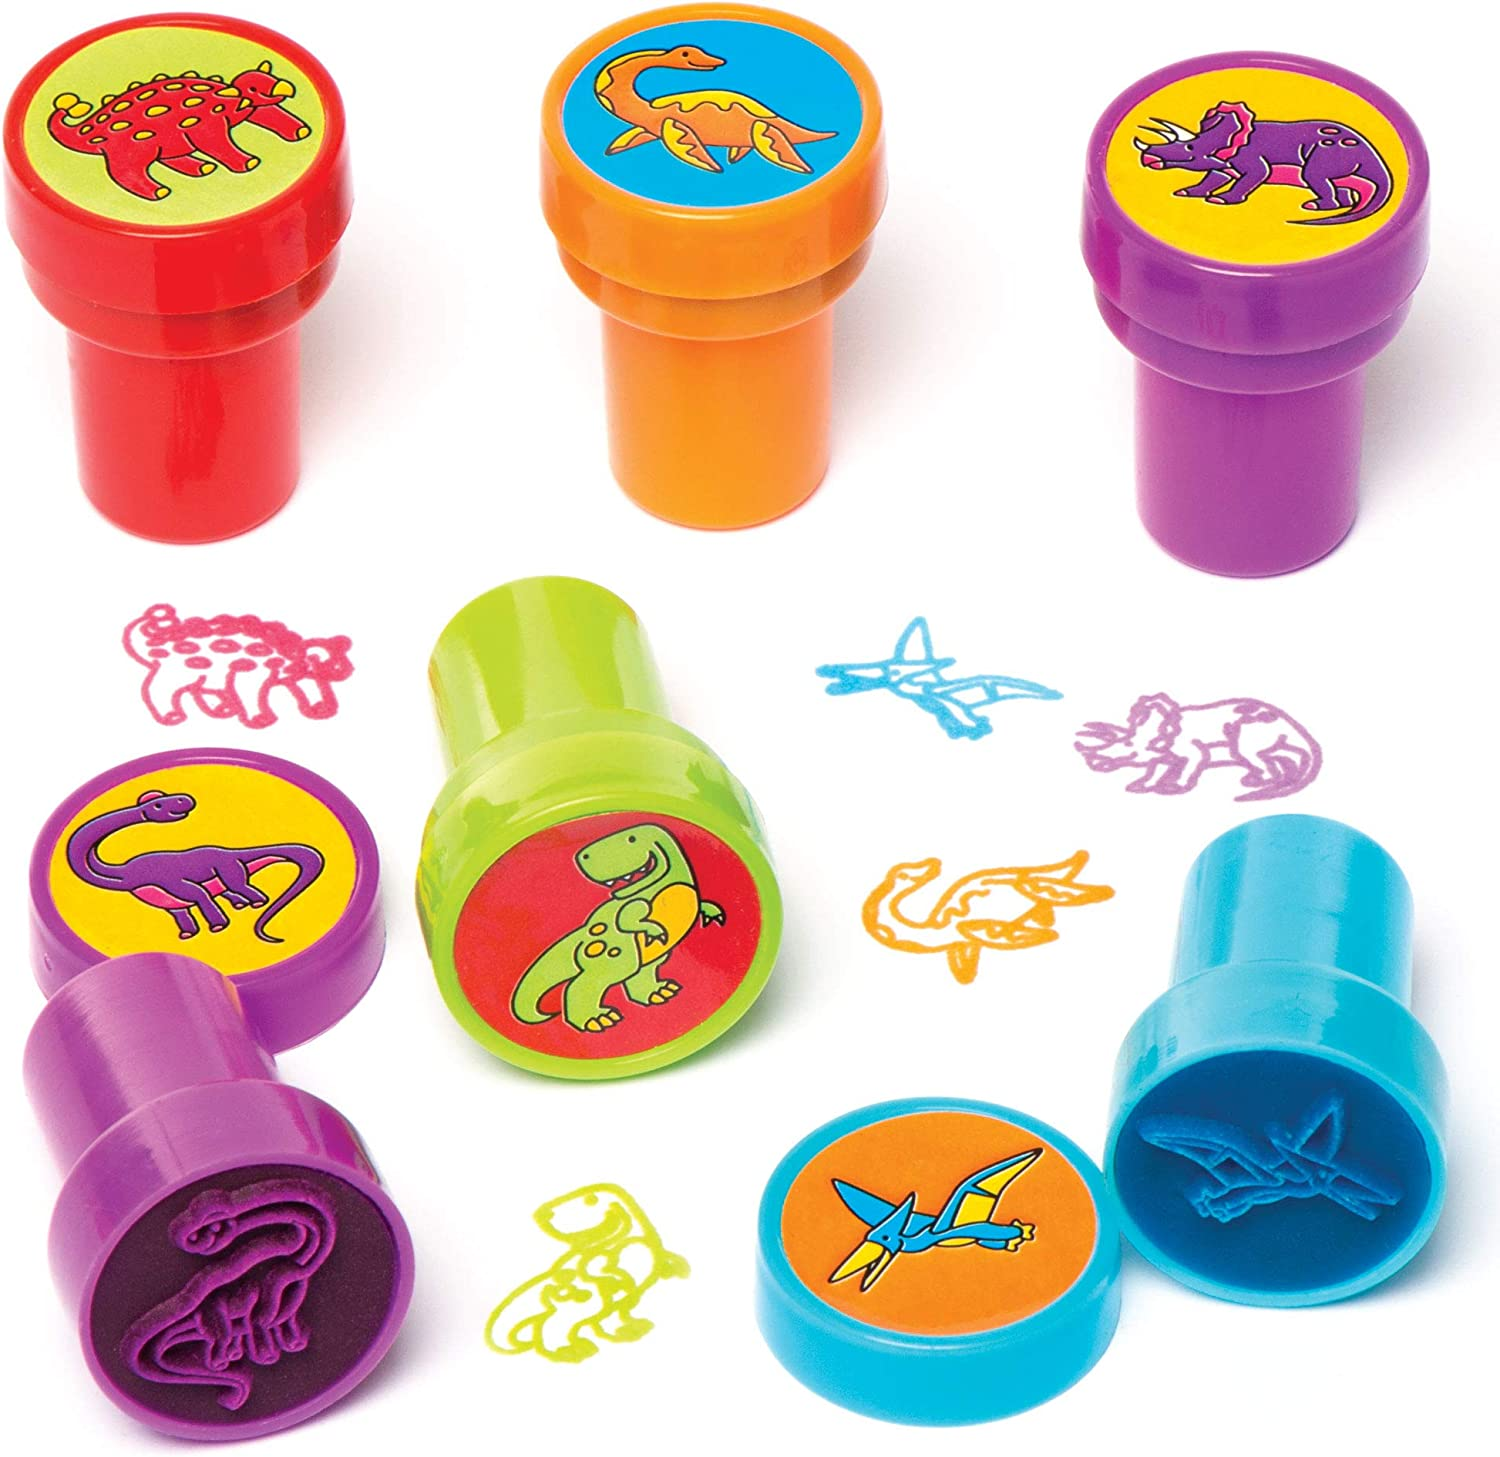 Bulk Dinosaur Stampers Goody Bag Stuffers In Assorted Dino Prints And Bright Colors Party Activity Box Of 24 for Kids Arts /& Crafts